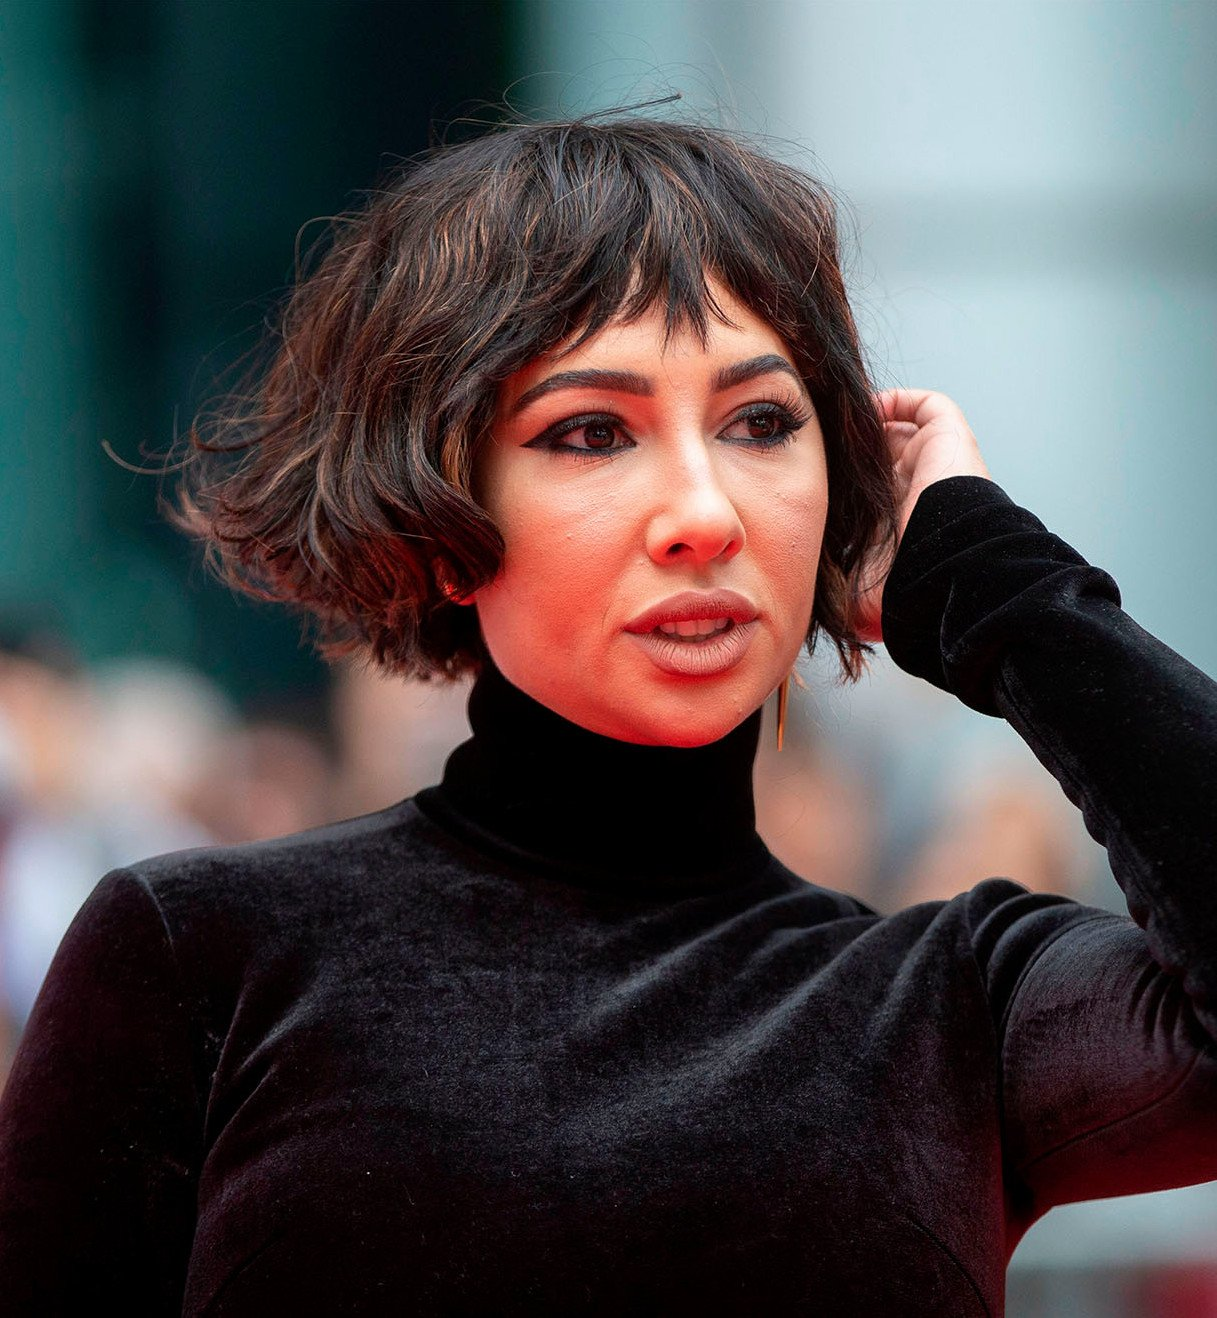 7. jackie cruz Here's What The Orange Is The New Black Cast Looks Like In Real Life